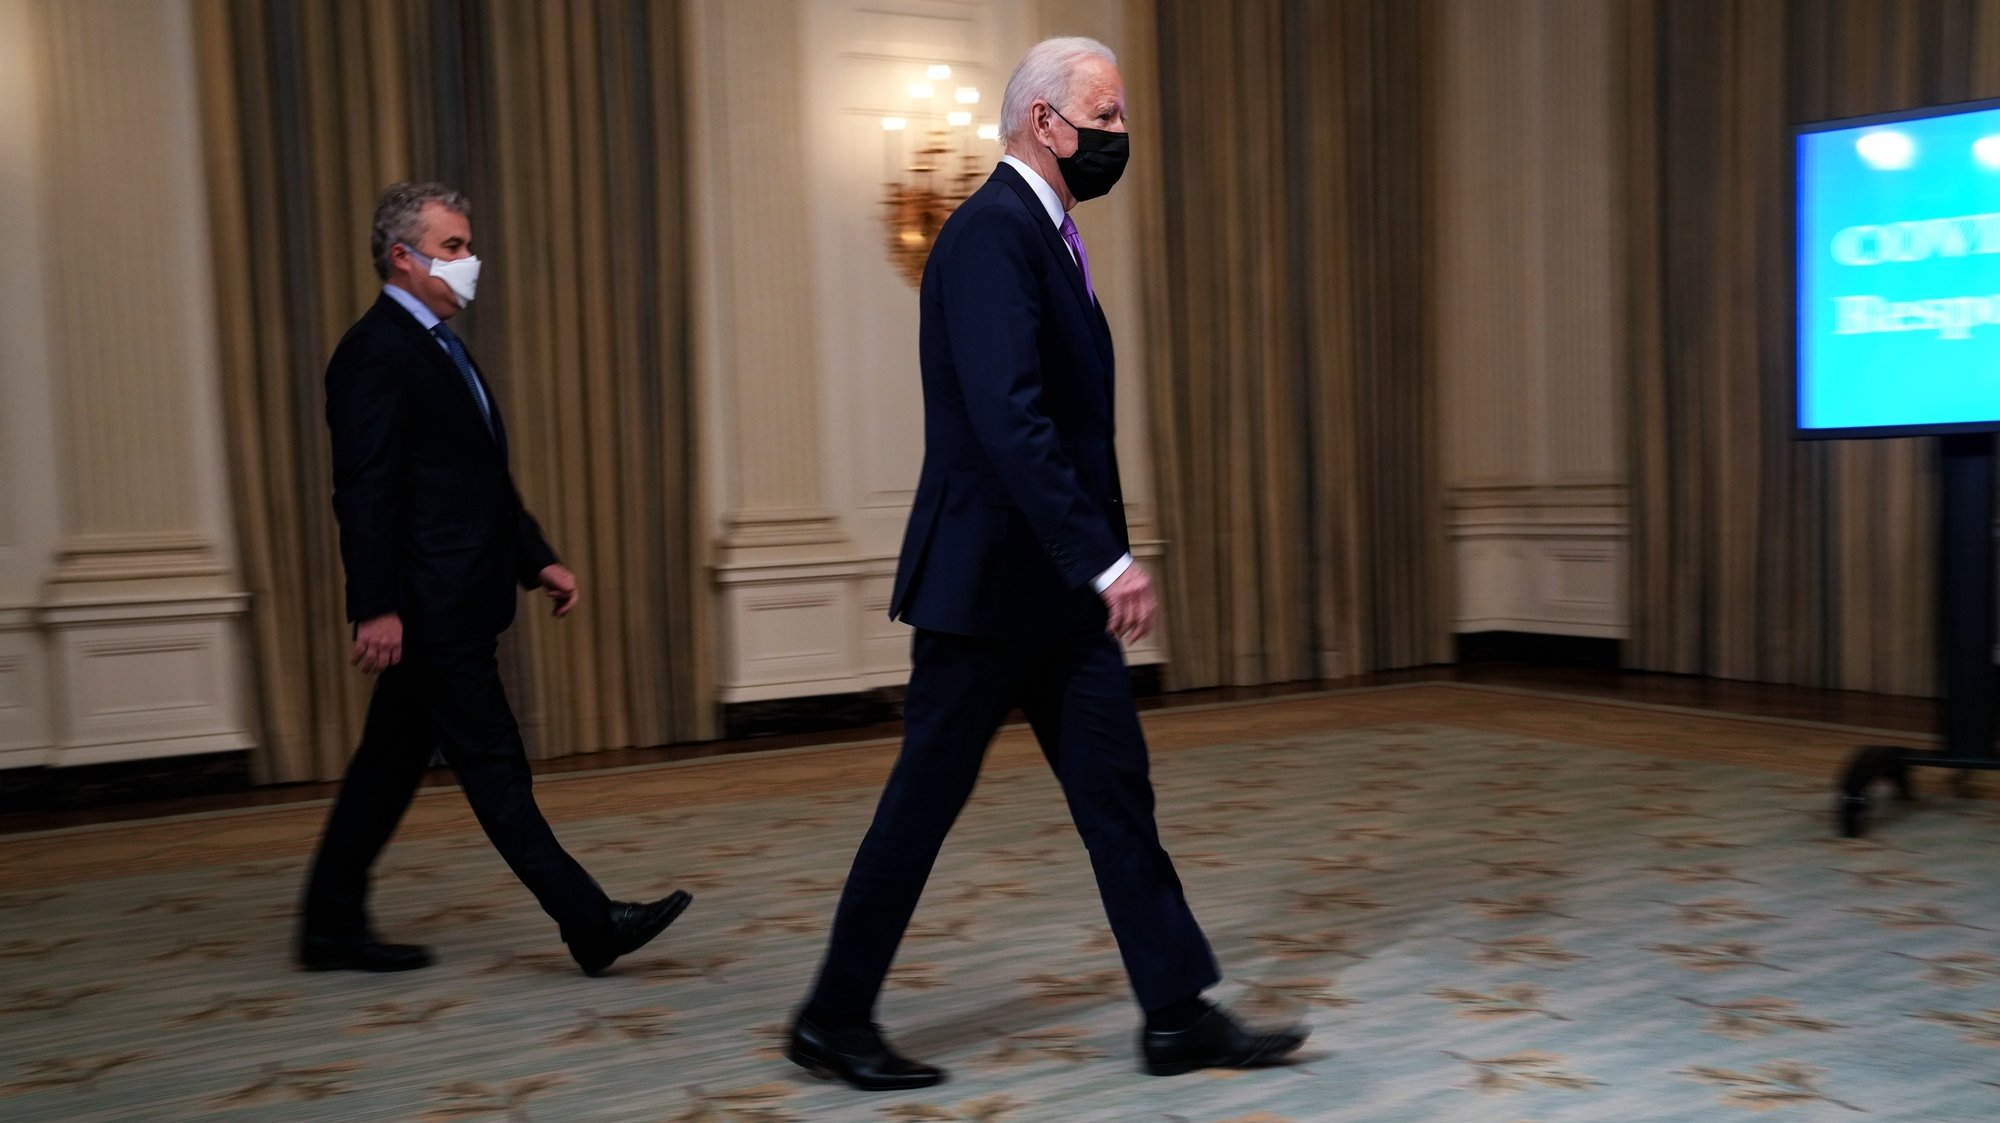 epa08967627 US President Joe Biden delivers remarks on the fight to contain the COVID-19 pandemic in the State Dining Room of the White House, in Washington, DC, USA, 26 January 2021. With Biden is COVID-19 task force coordinator Jeff Zients.  EPA/Doug Mills / POOL